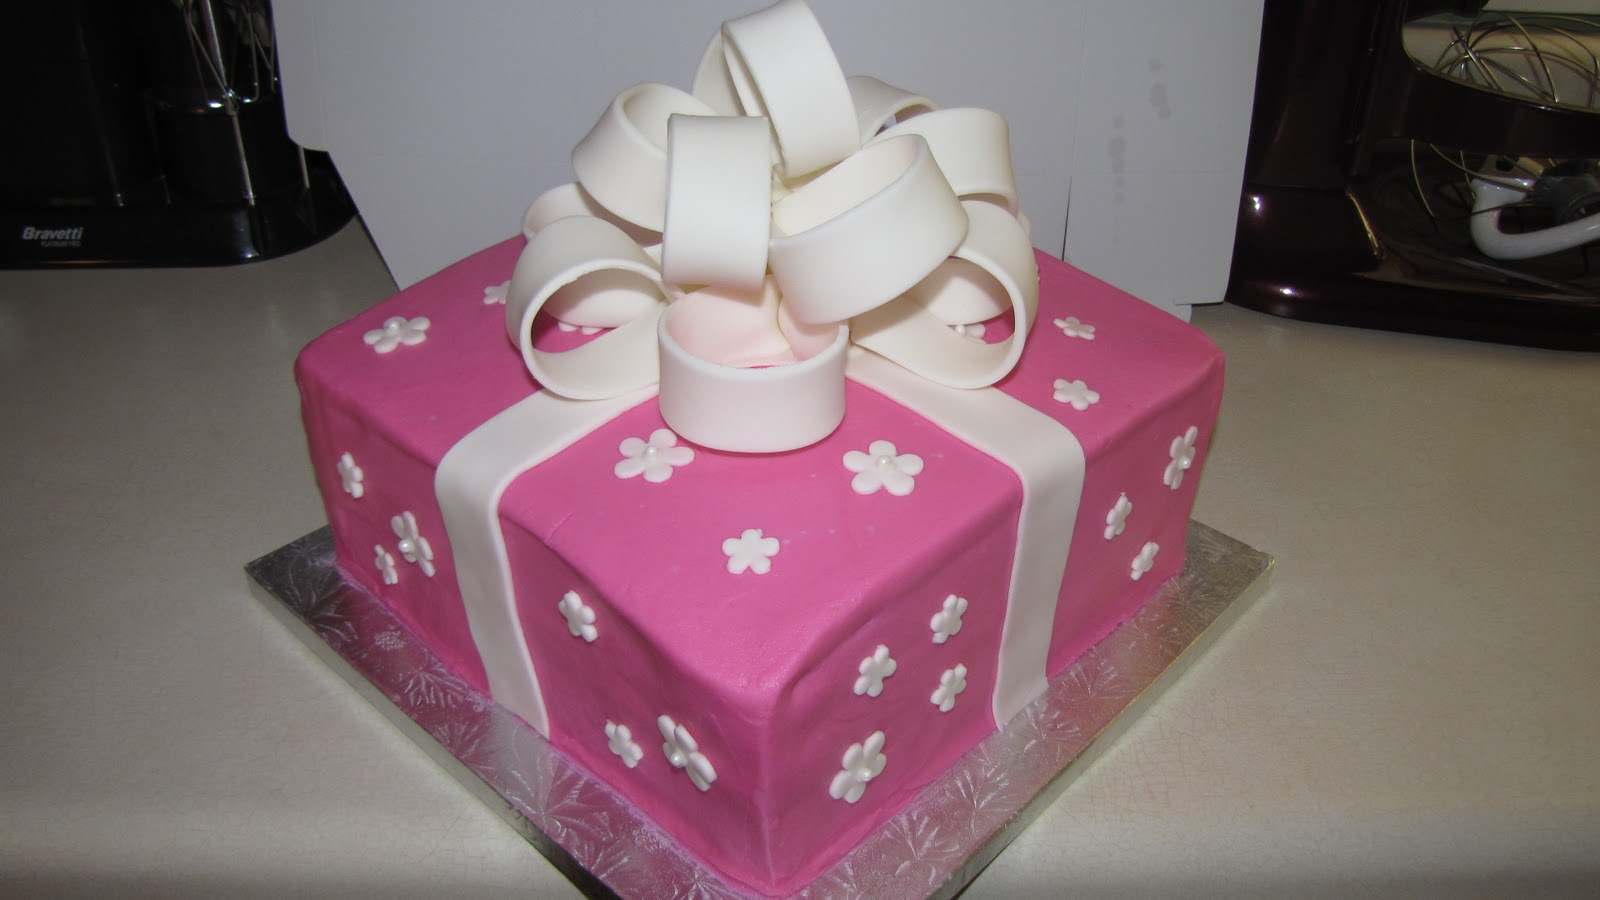 Cake Decorating Gifts : Decorating Tips, Tricks, and Ideas: Pink Gift Cake